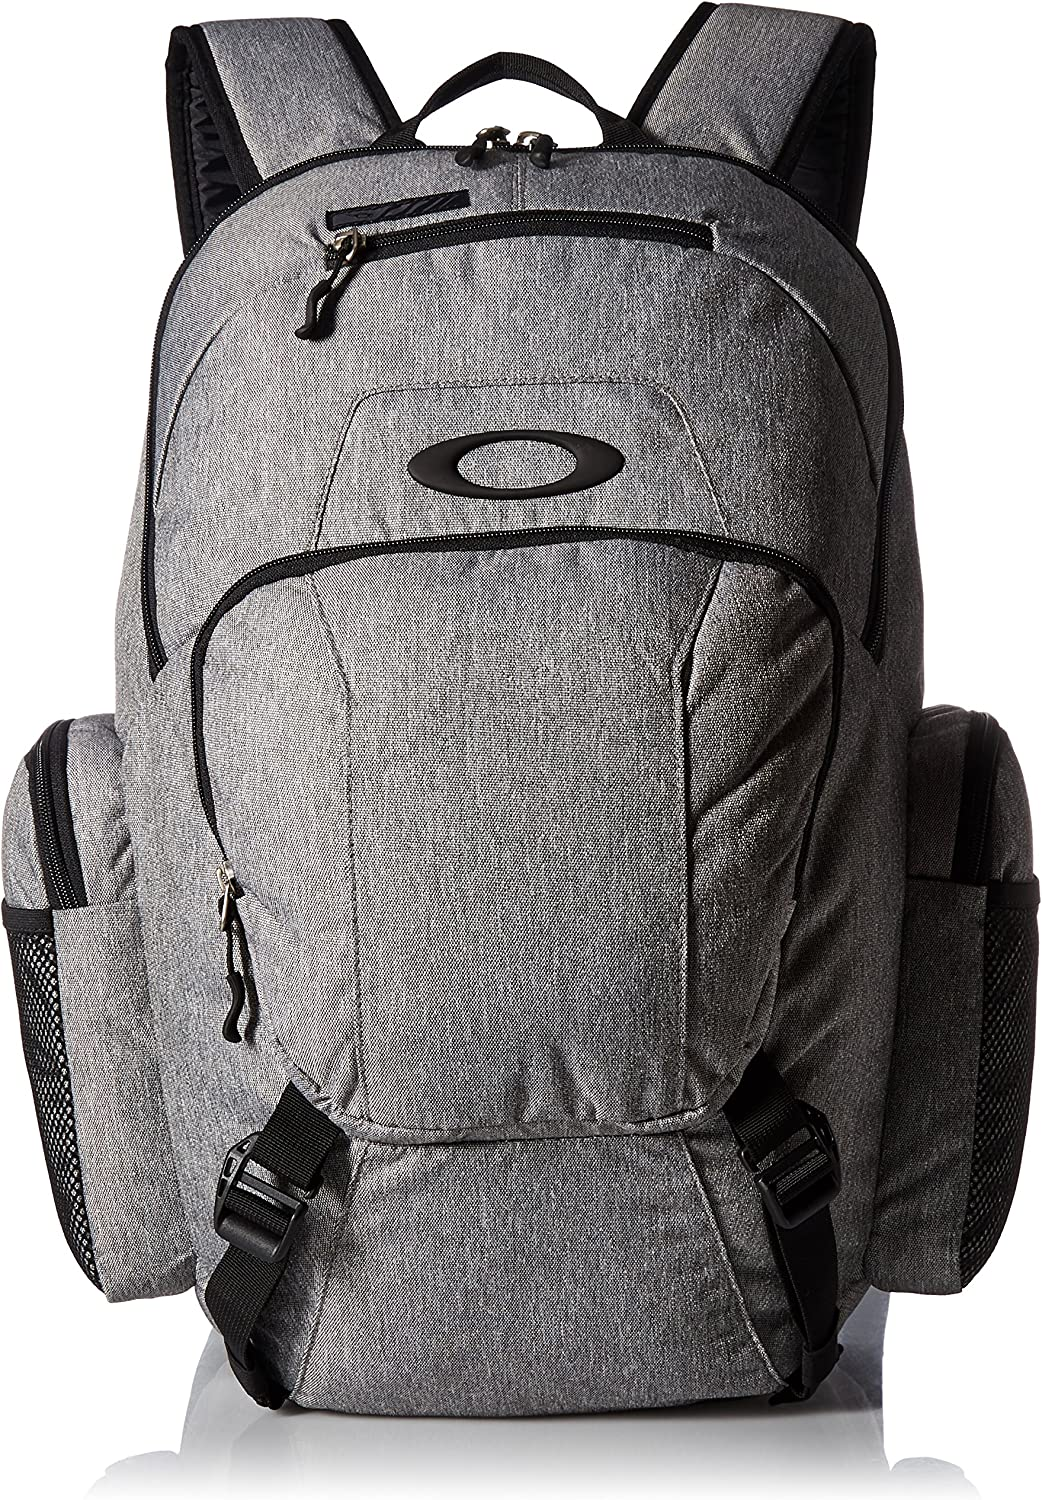 Oakley Mens Men s Blade Wet Dry 30 Backpack, Heather Grey, One Size